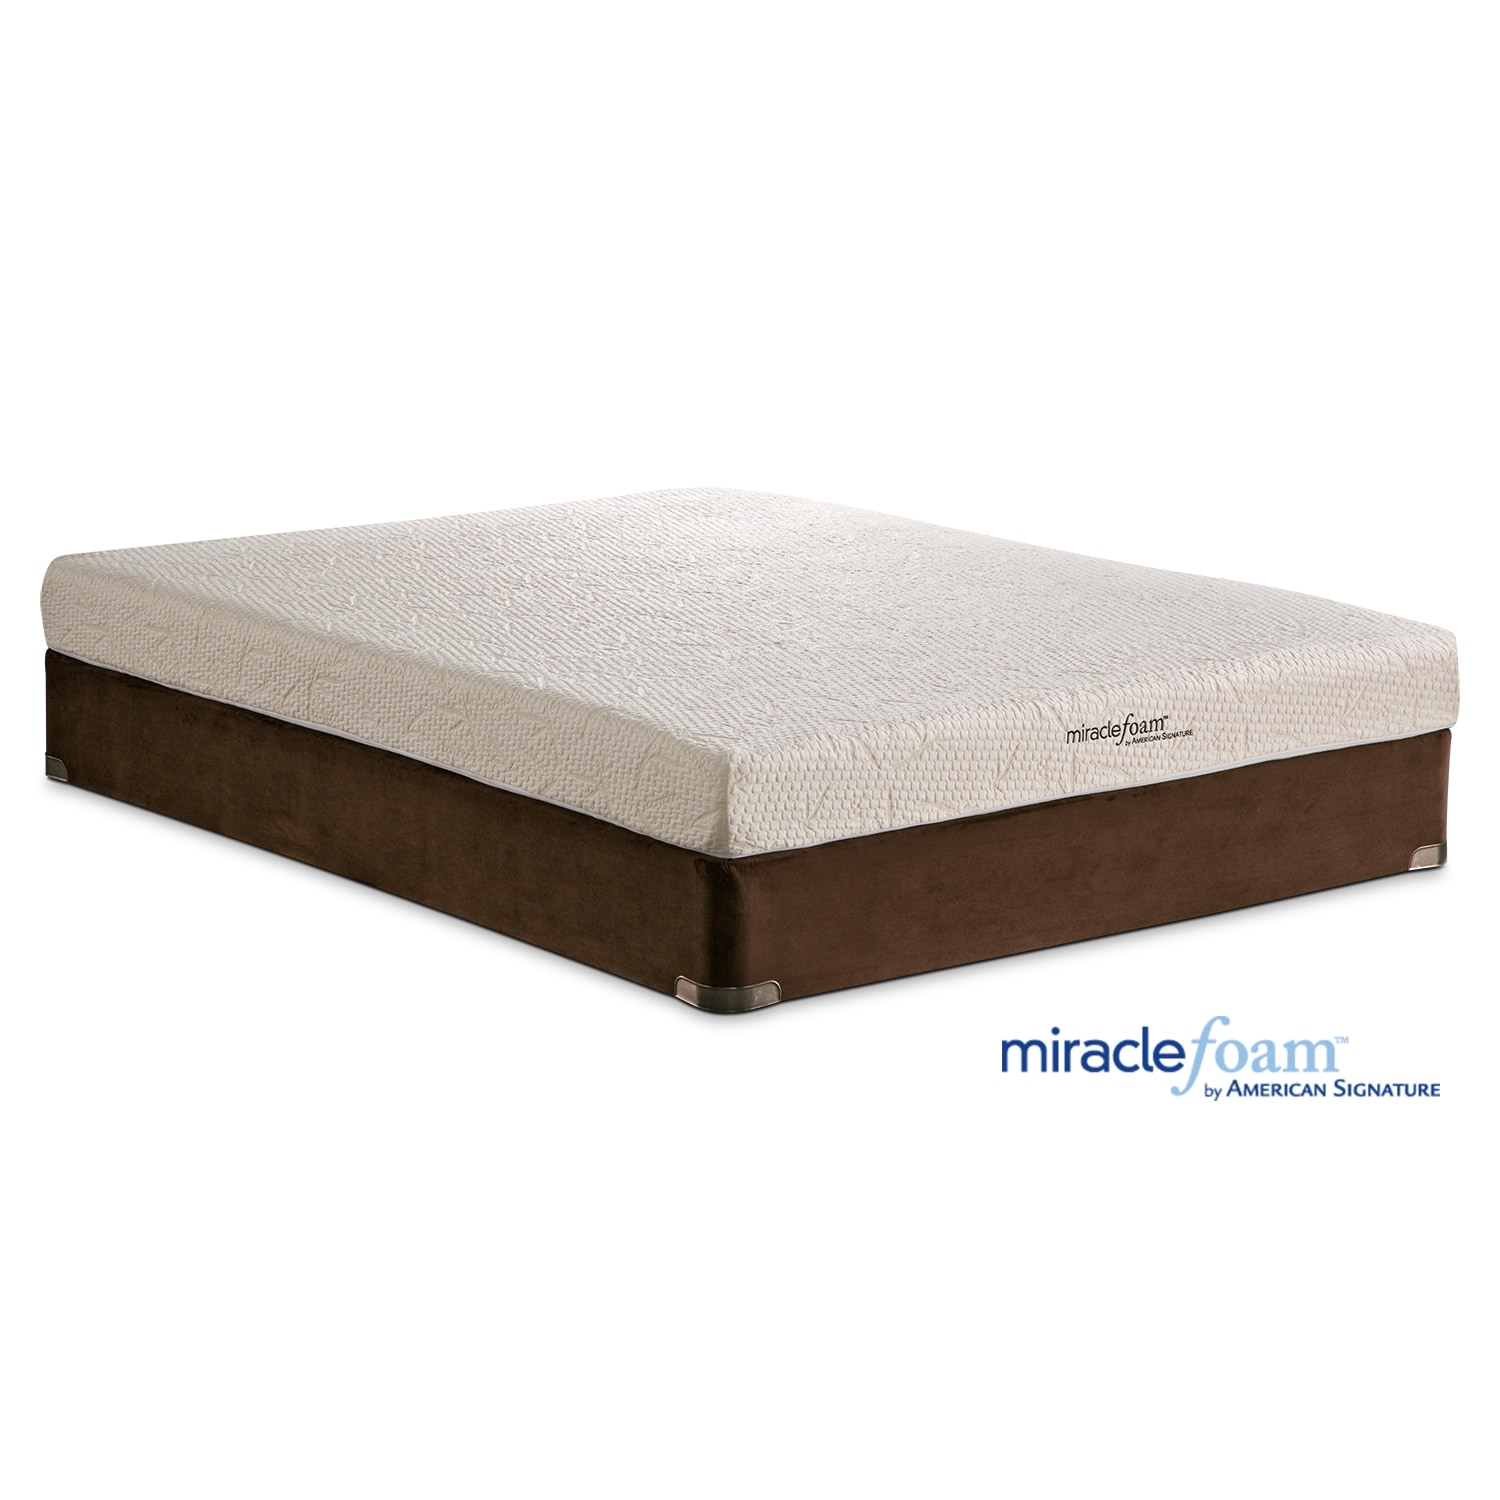 Mattresses and Bedding - Miracle Foam Renew II Twin Mattress & Foundation Set